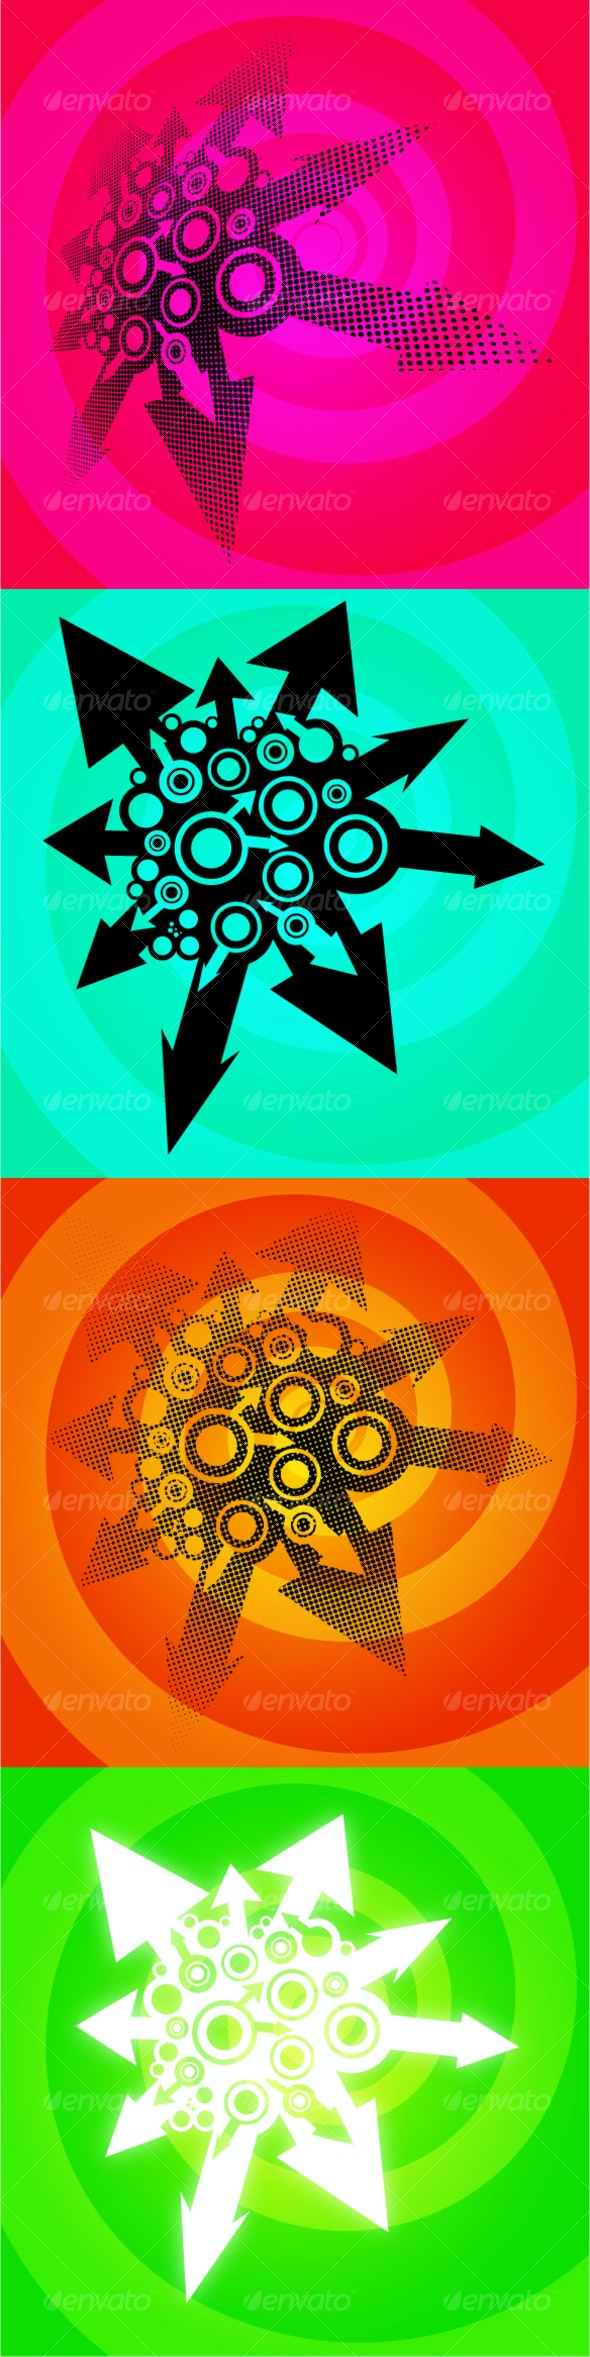 4 Abstract arrow bursts with abstract background - Abstract Conceptual